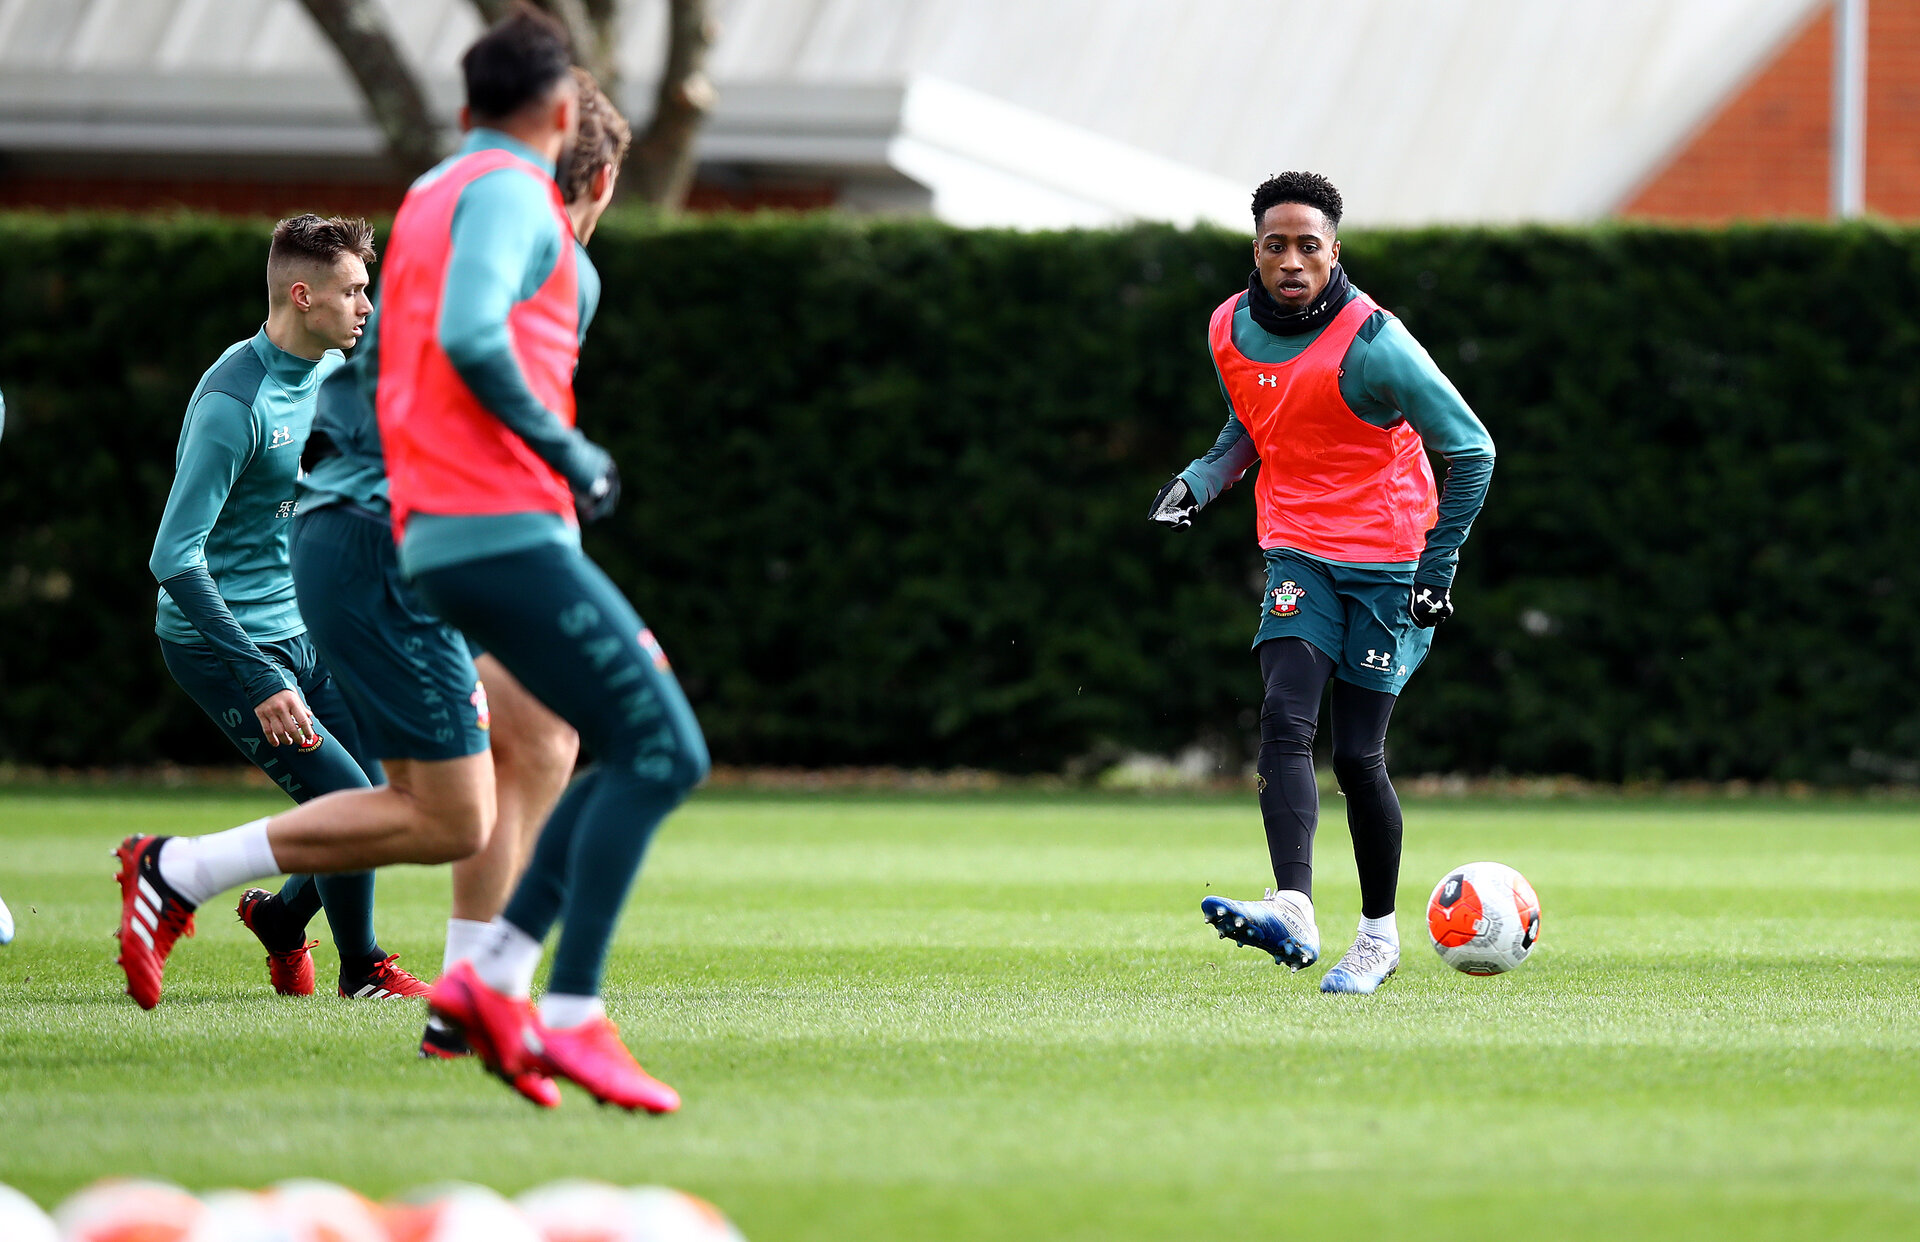 SOUTHAMPTON, ENGLAND - FEBRUARY 25: Kyle Walker-Peters during a Southampton FC training session at the Staplewood Campus on February 25, 2020 in Southampton, England. (Photo by Matt Watson/Southampton FC via Getty Images)